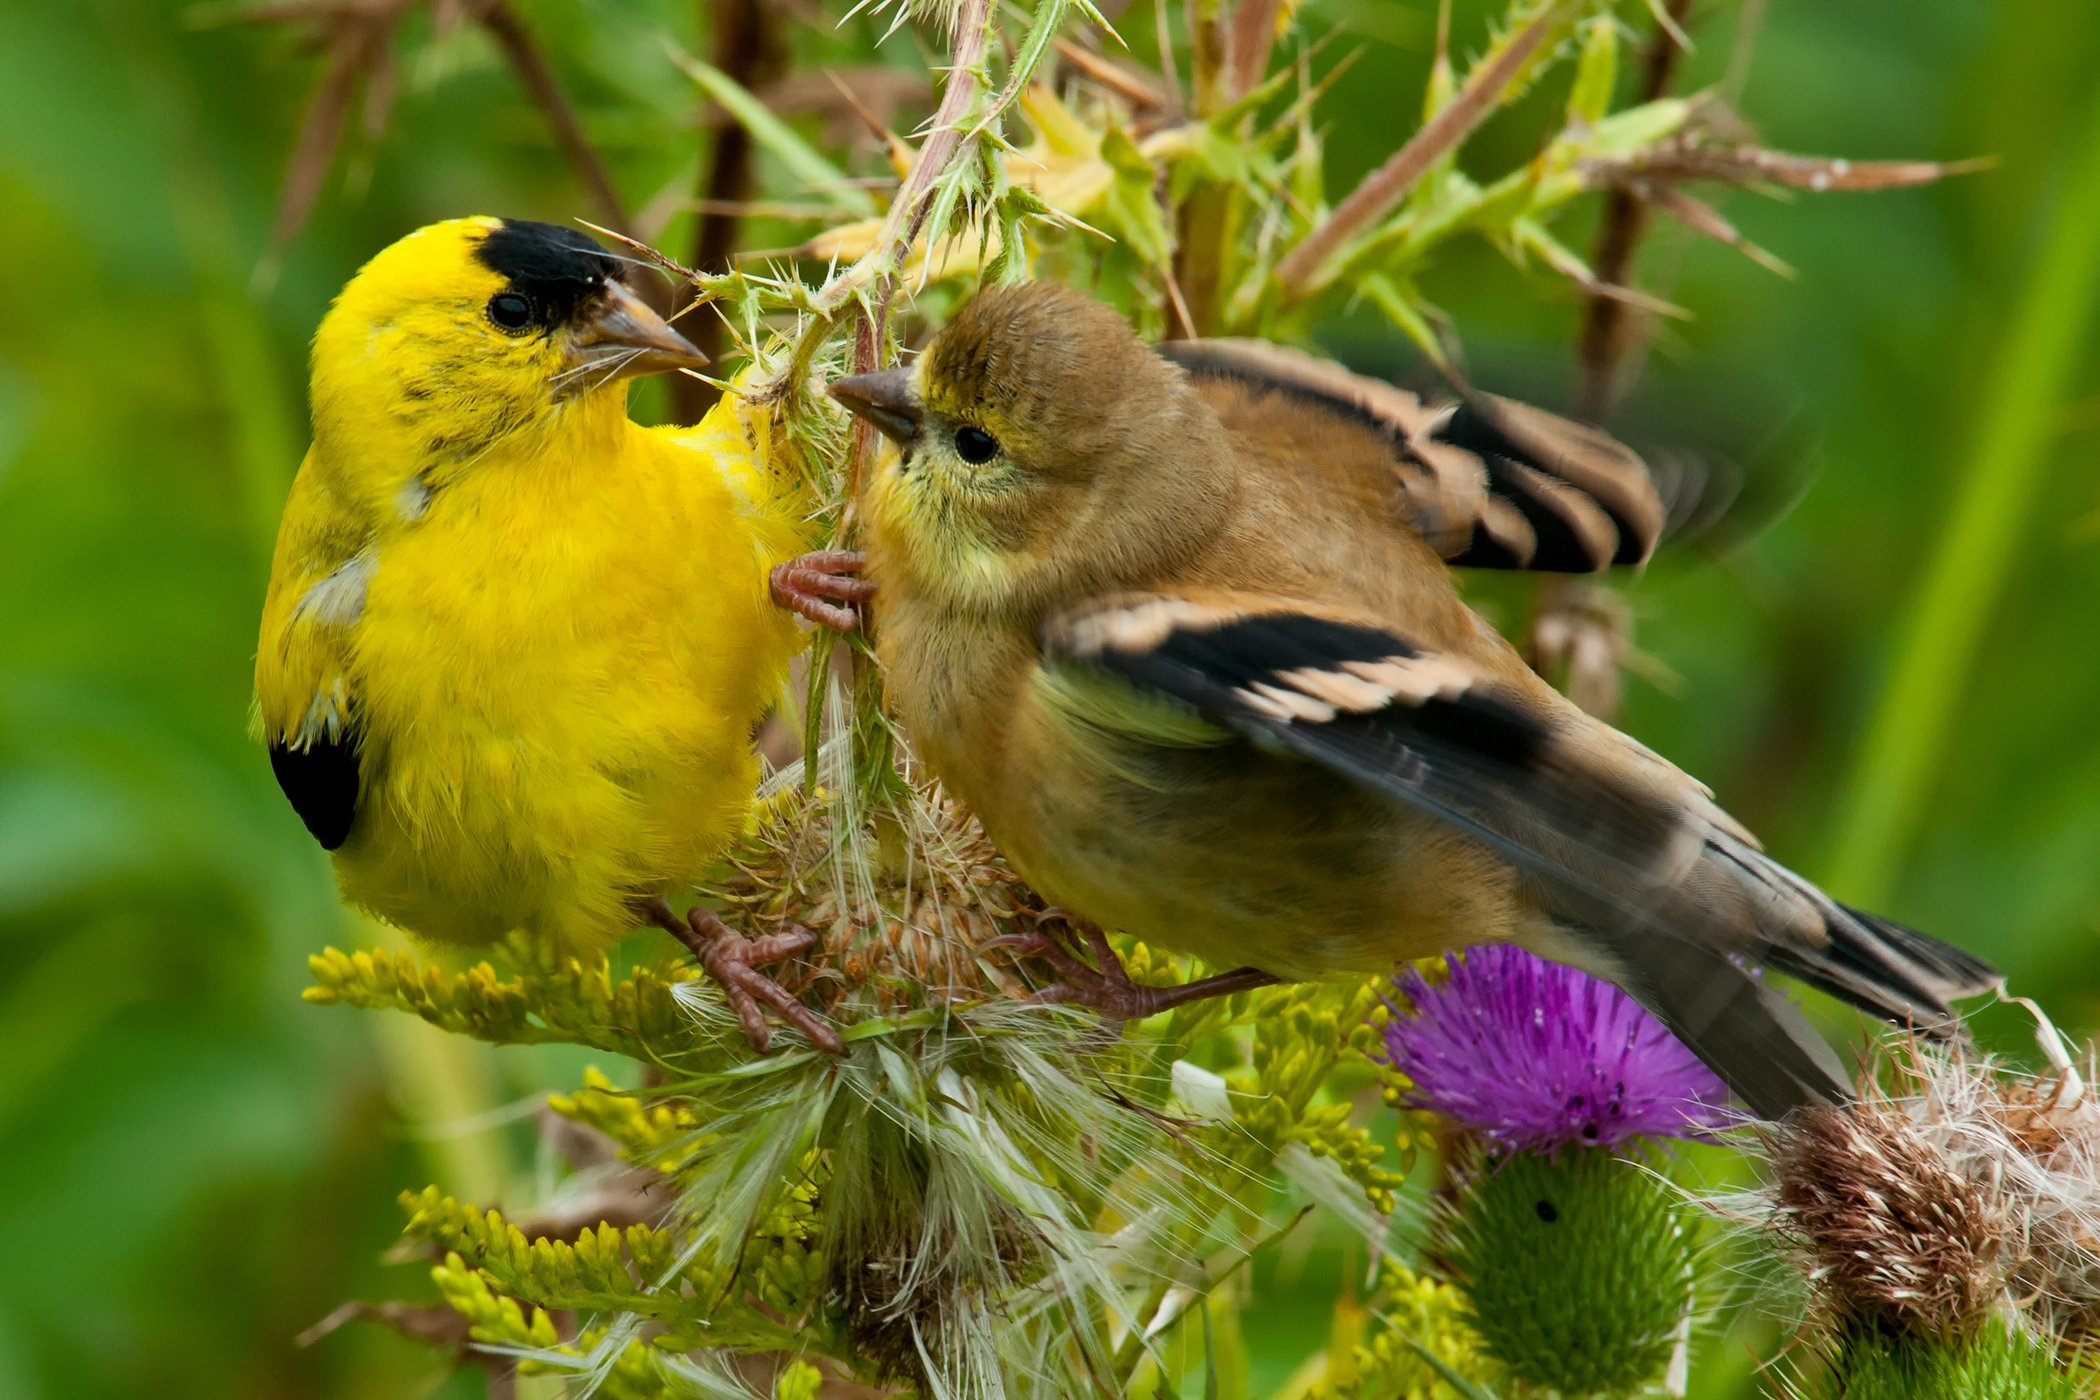 Sneezing and Nasal Discharge in Birds - Symptoms, Causes. Diagnosis, Treatment, Recovery, Management, Cost